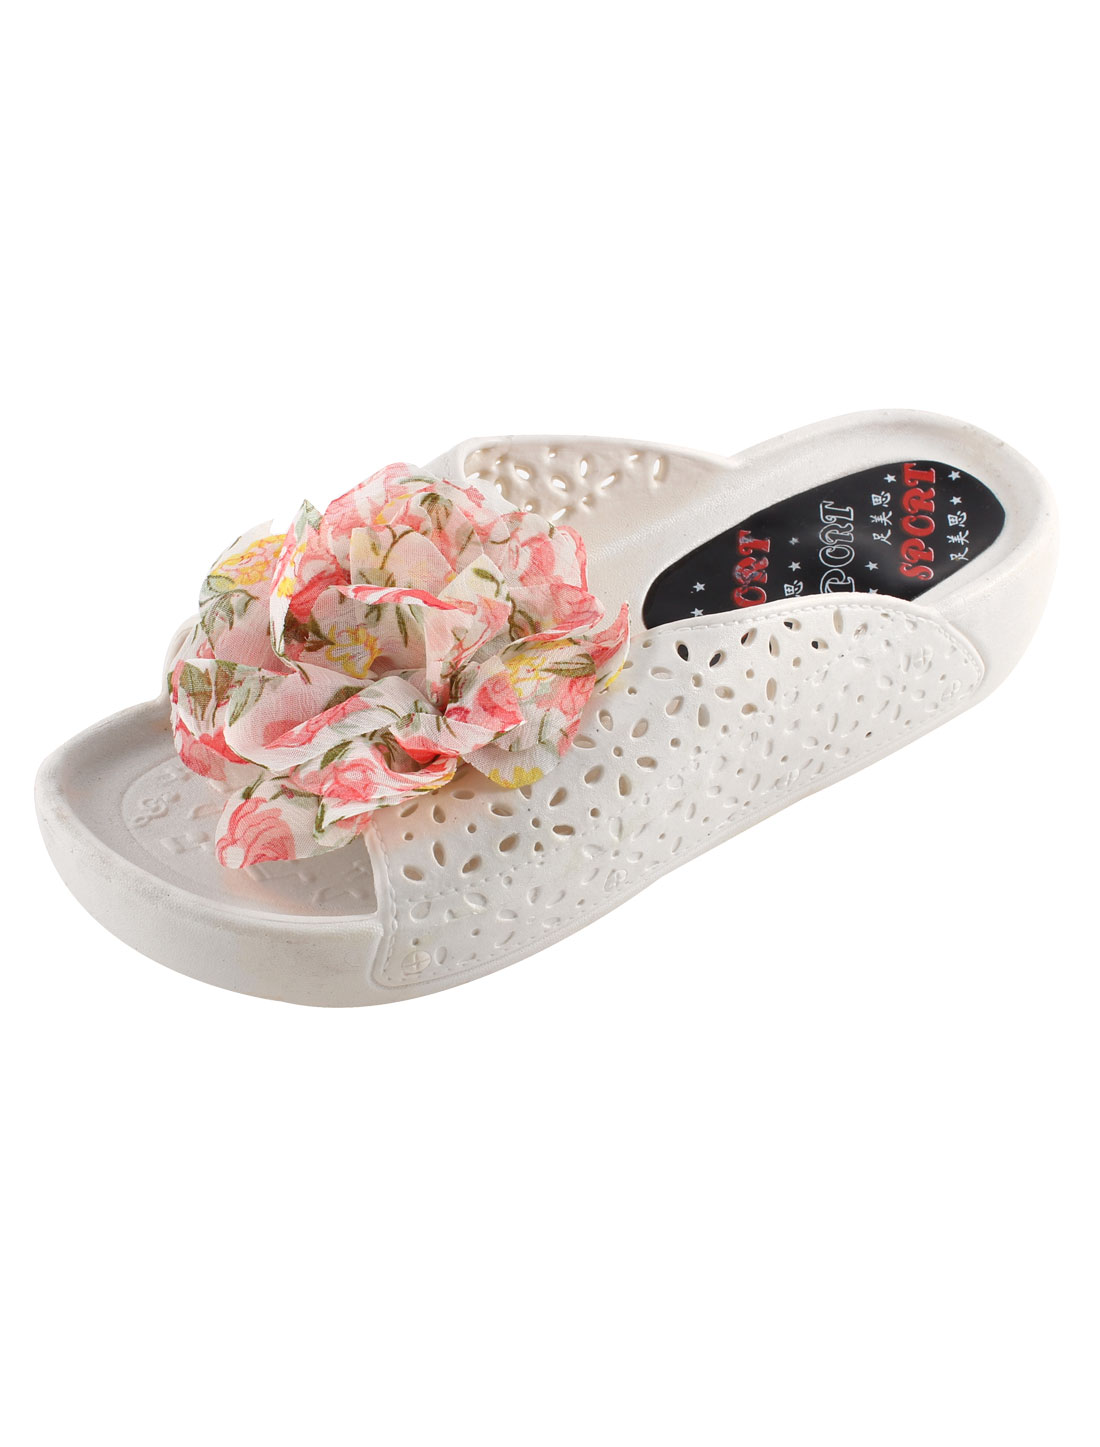 Lady Flower Decor Hollow Out Open Toe Anti-slip Slippers US 6.5 Pair